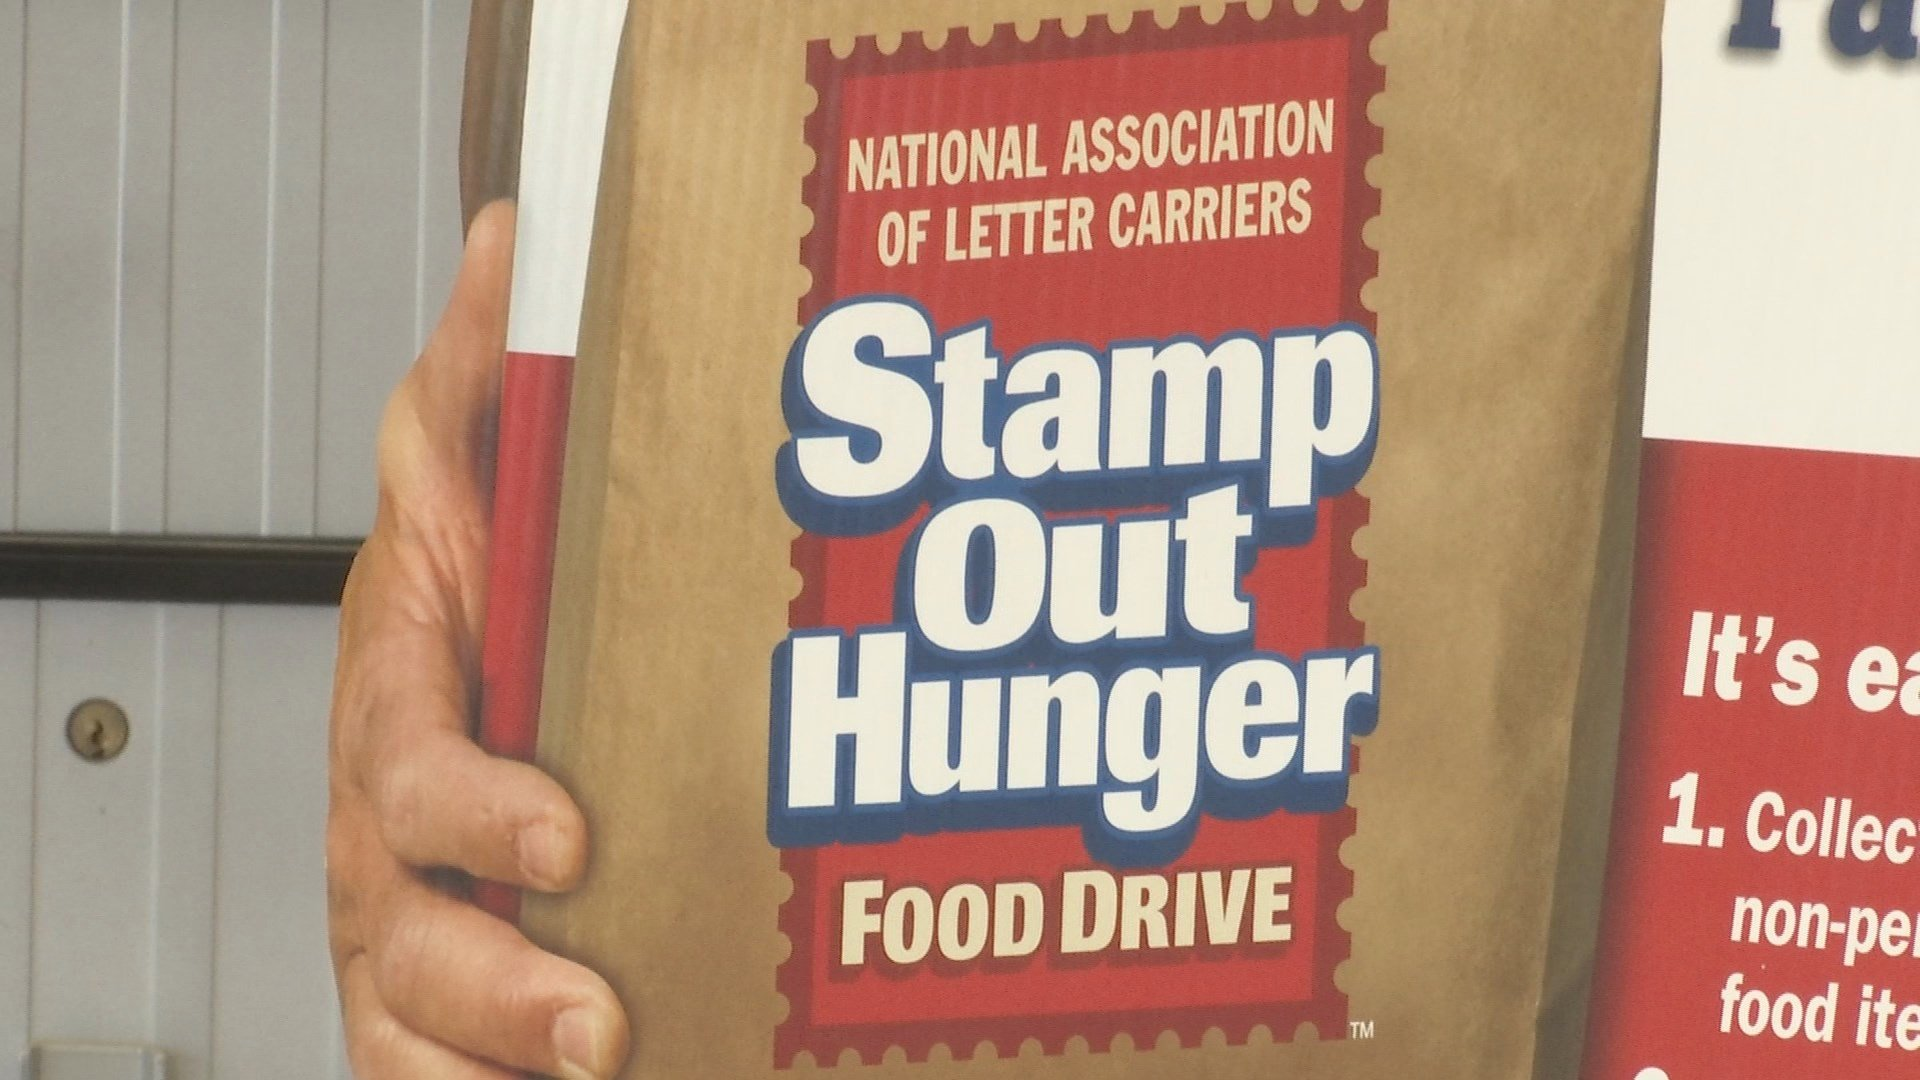 You can help stamp out hunger with trip to mailbox